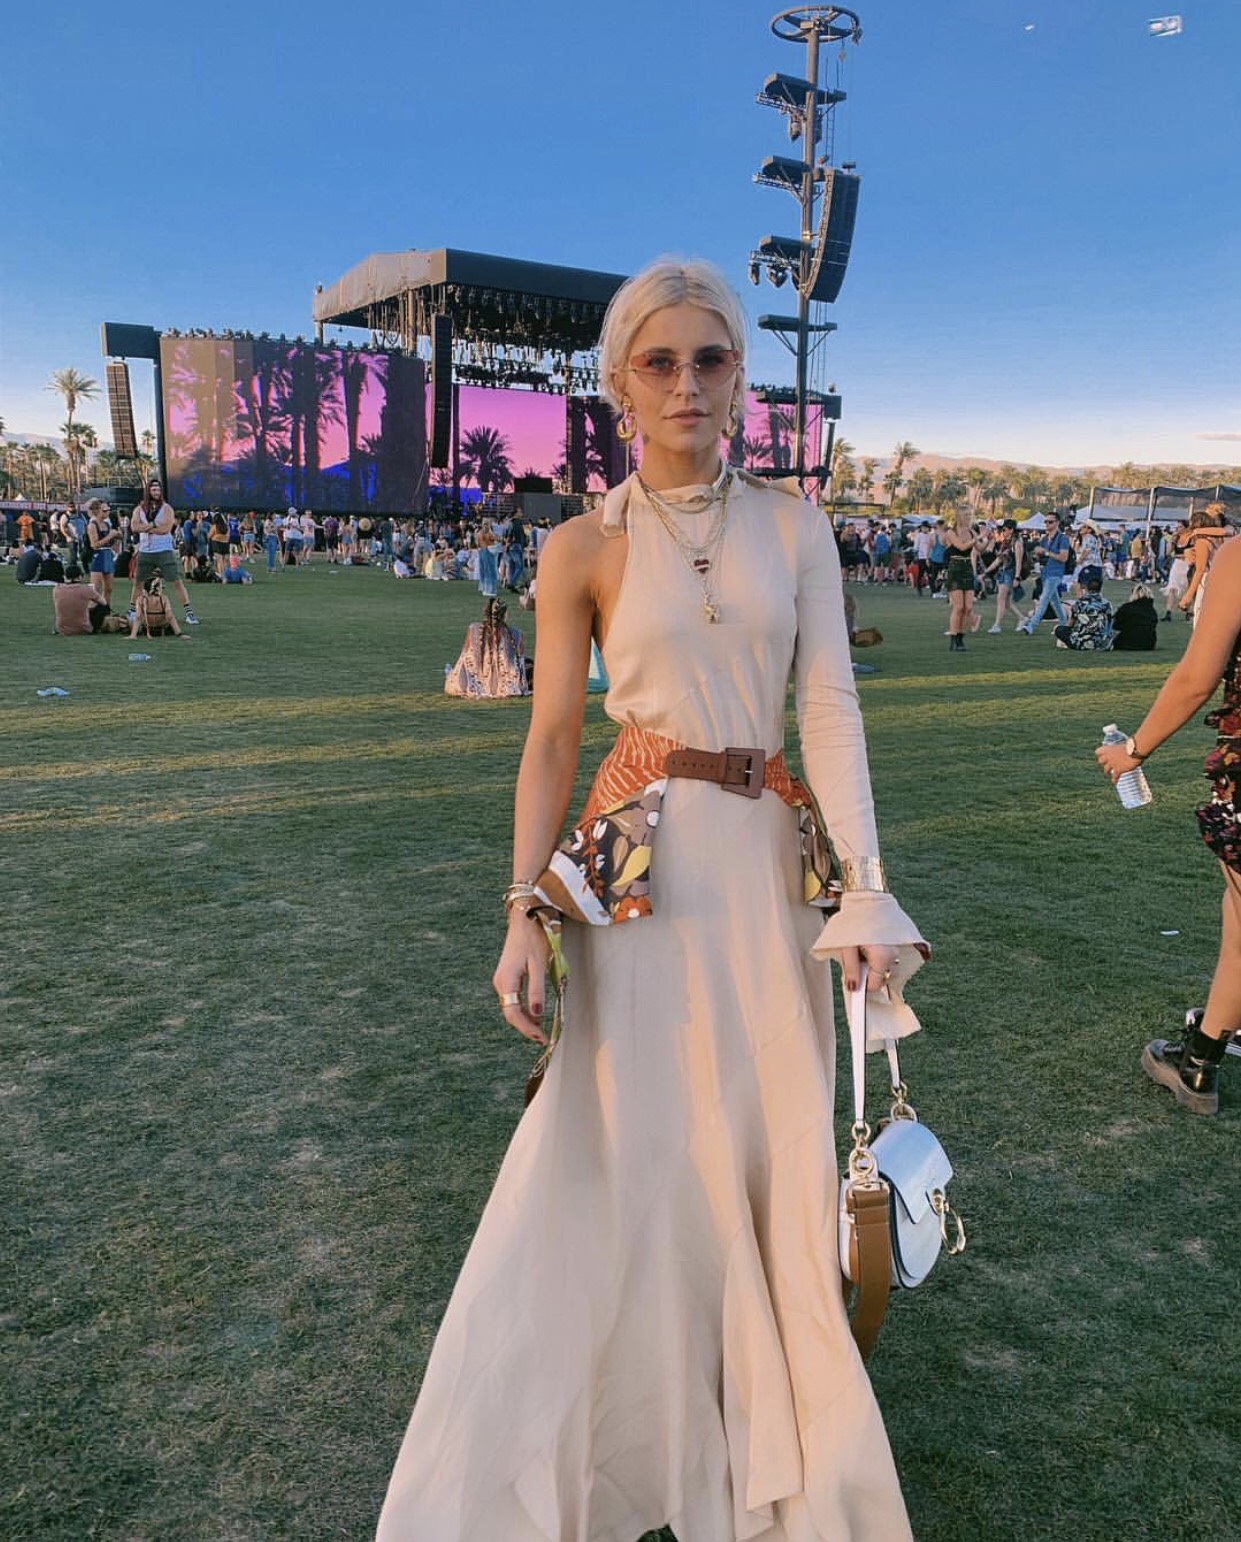 Coachella festival, and is located in a batik dyed bohemian jumpsuit.